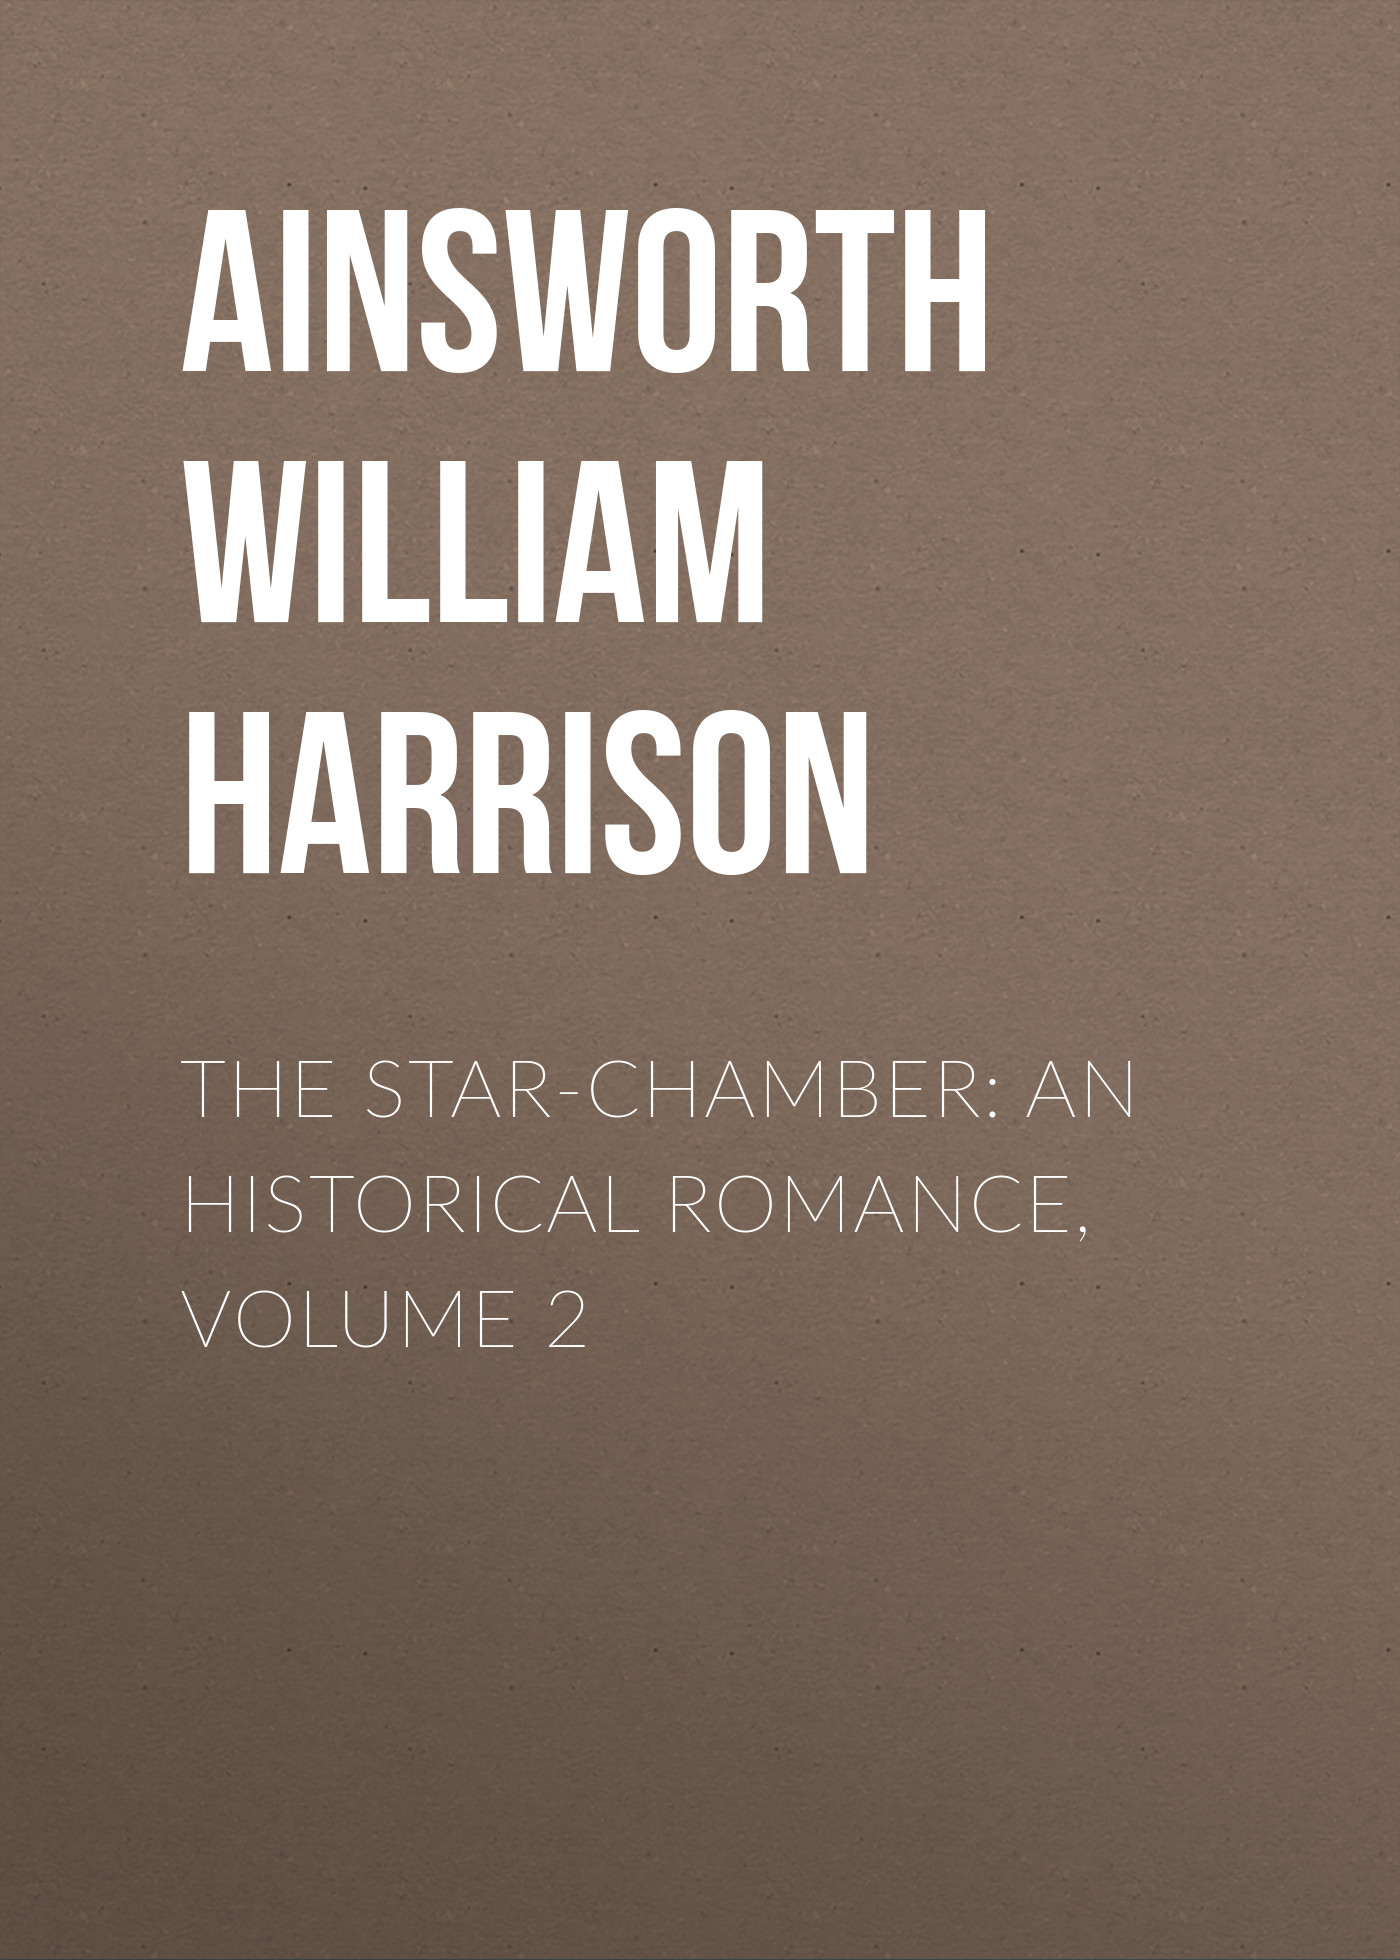 Ainsworth William Harrison The Star-Chamber: An Historical Romance, Volume 2 ainsworth william harrison windsor castle